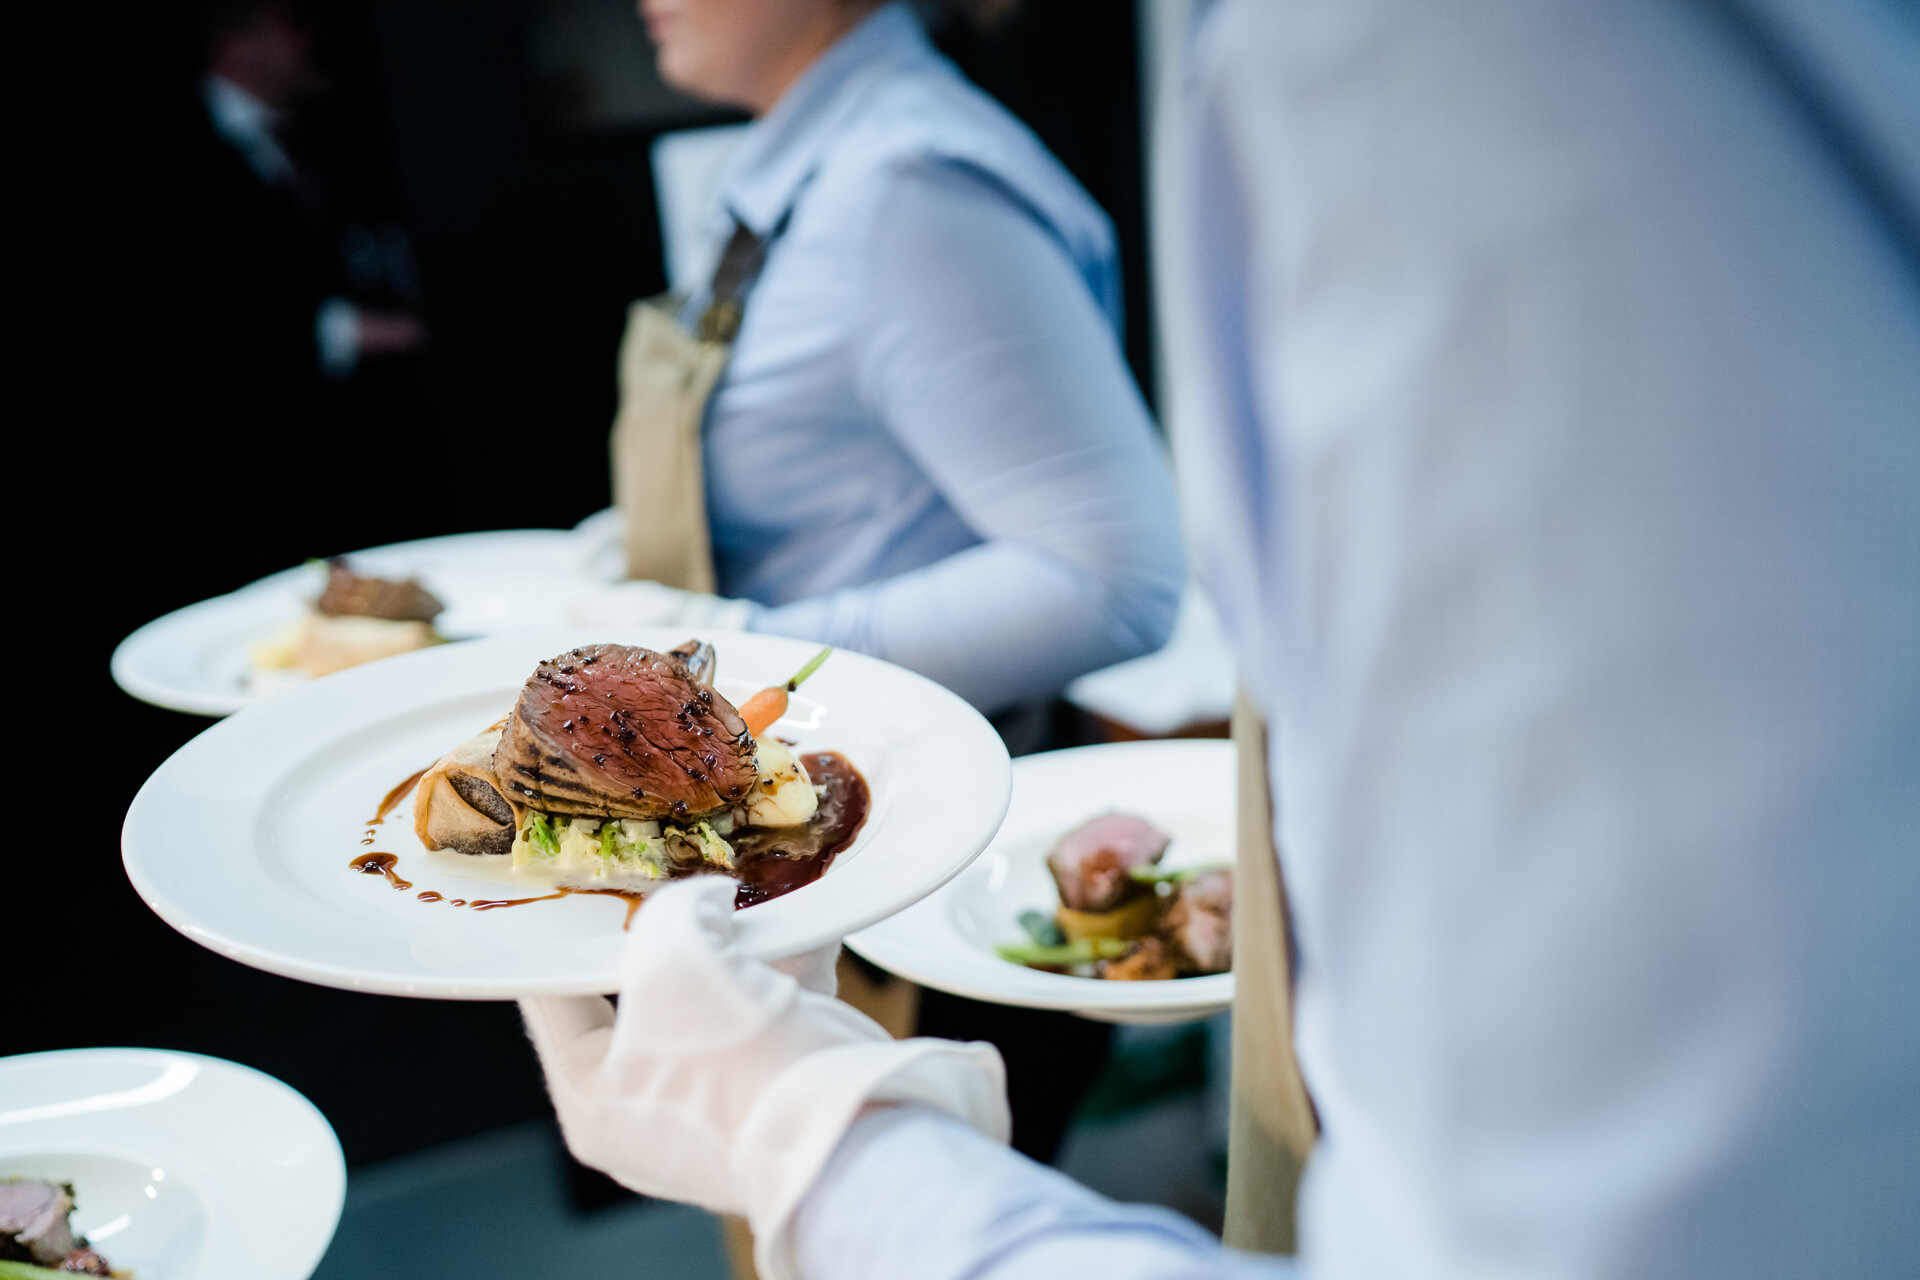 Great tasting food being served at Syrencot wedding venue